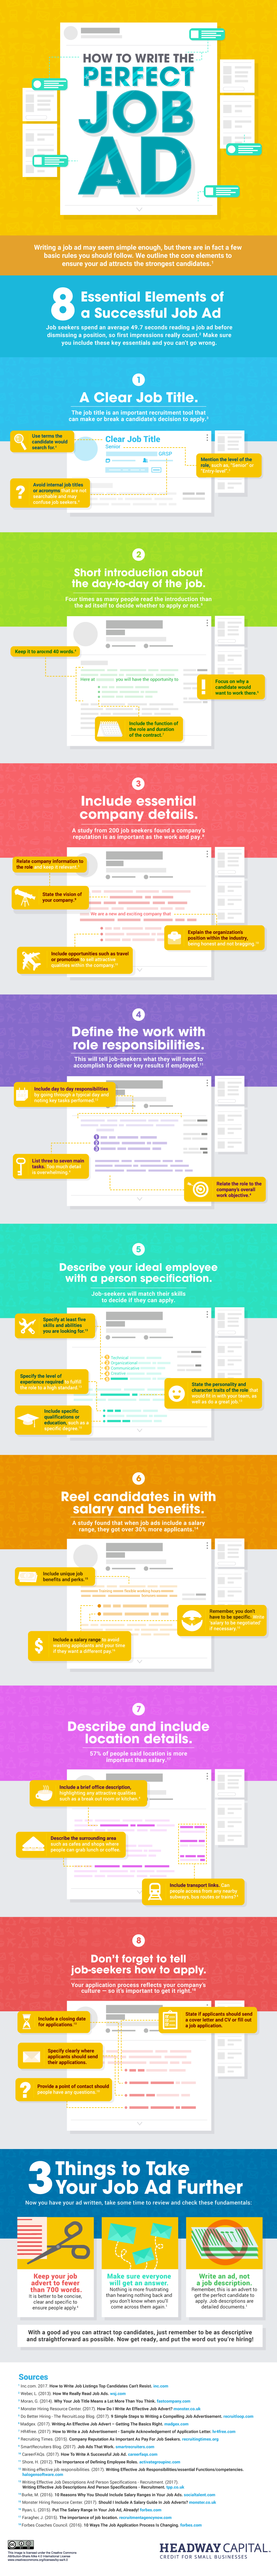 infographic how to write the perfect job ad com click to view enlarged version